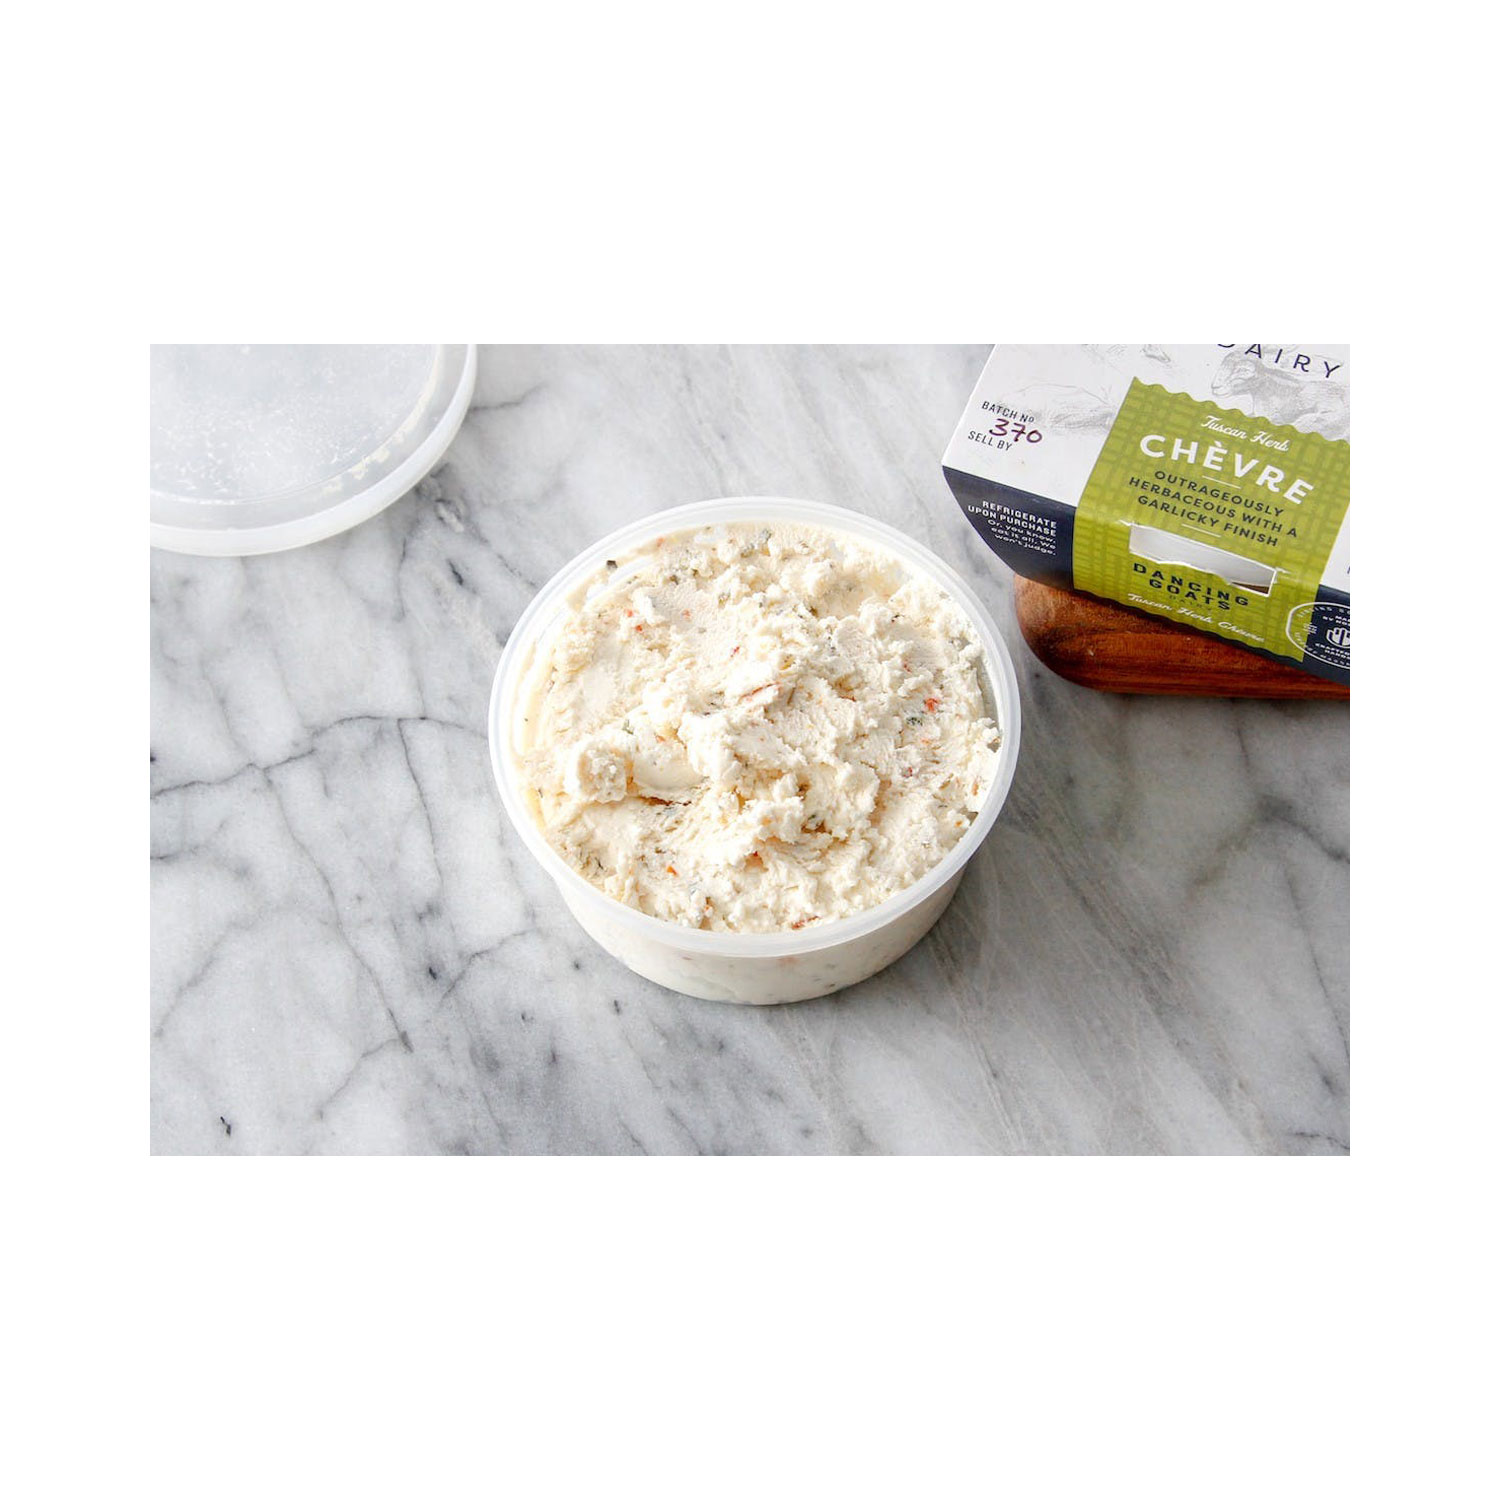 WHIPPED CHEVRE BY DANCING GOATS DAIRY